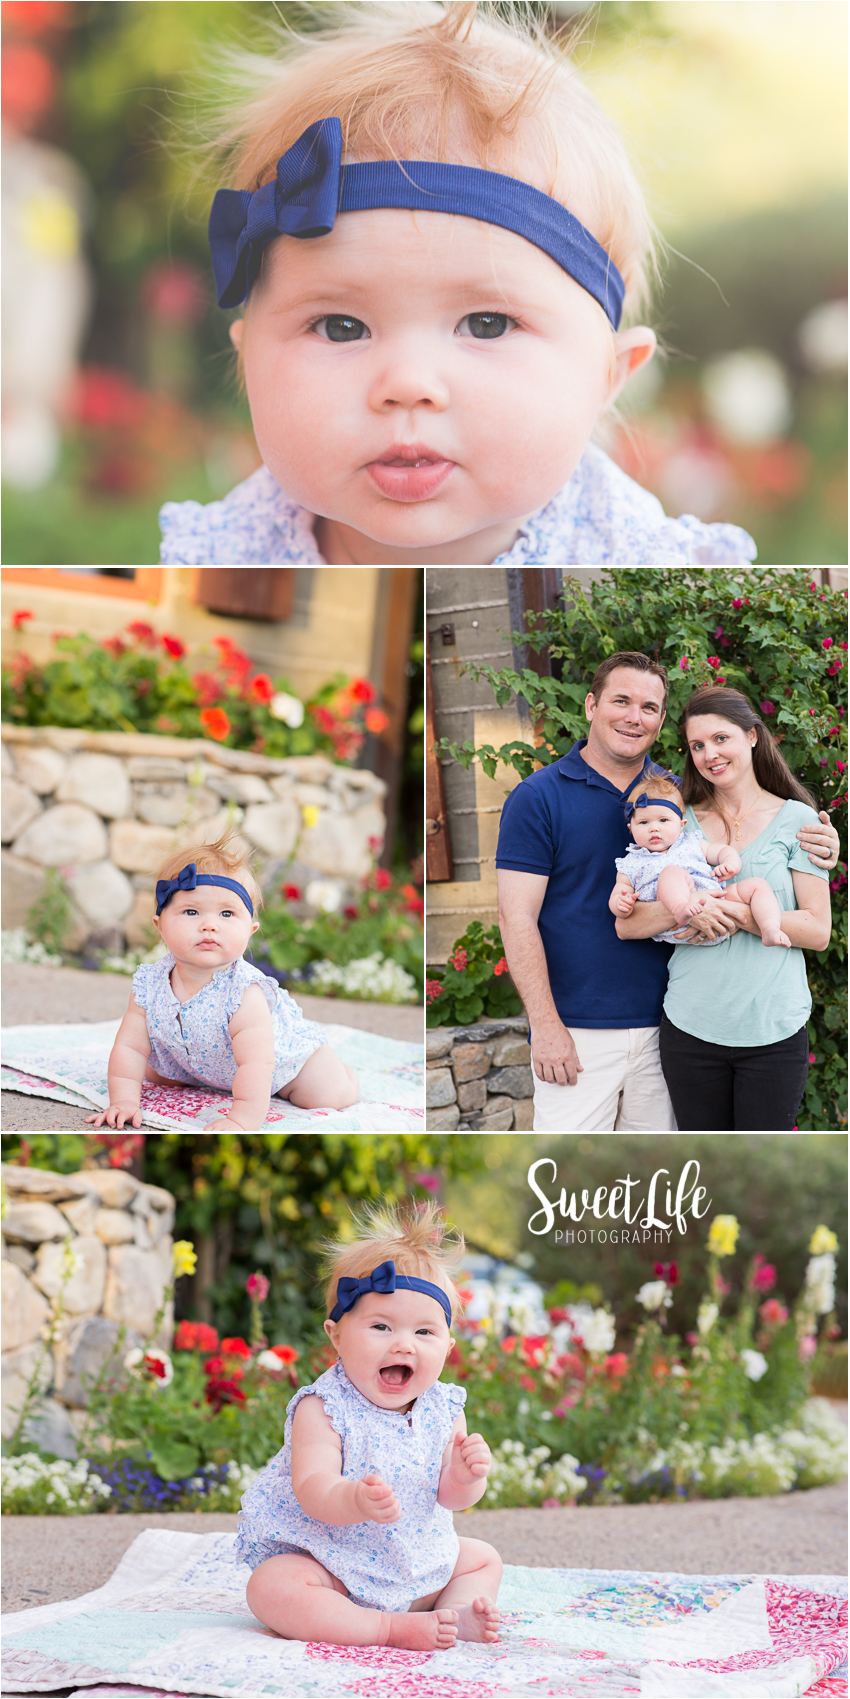 Scottsdale Baby Photographer : SweetLife Photography